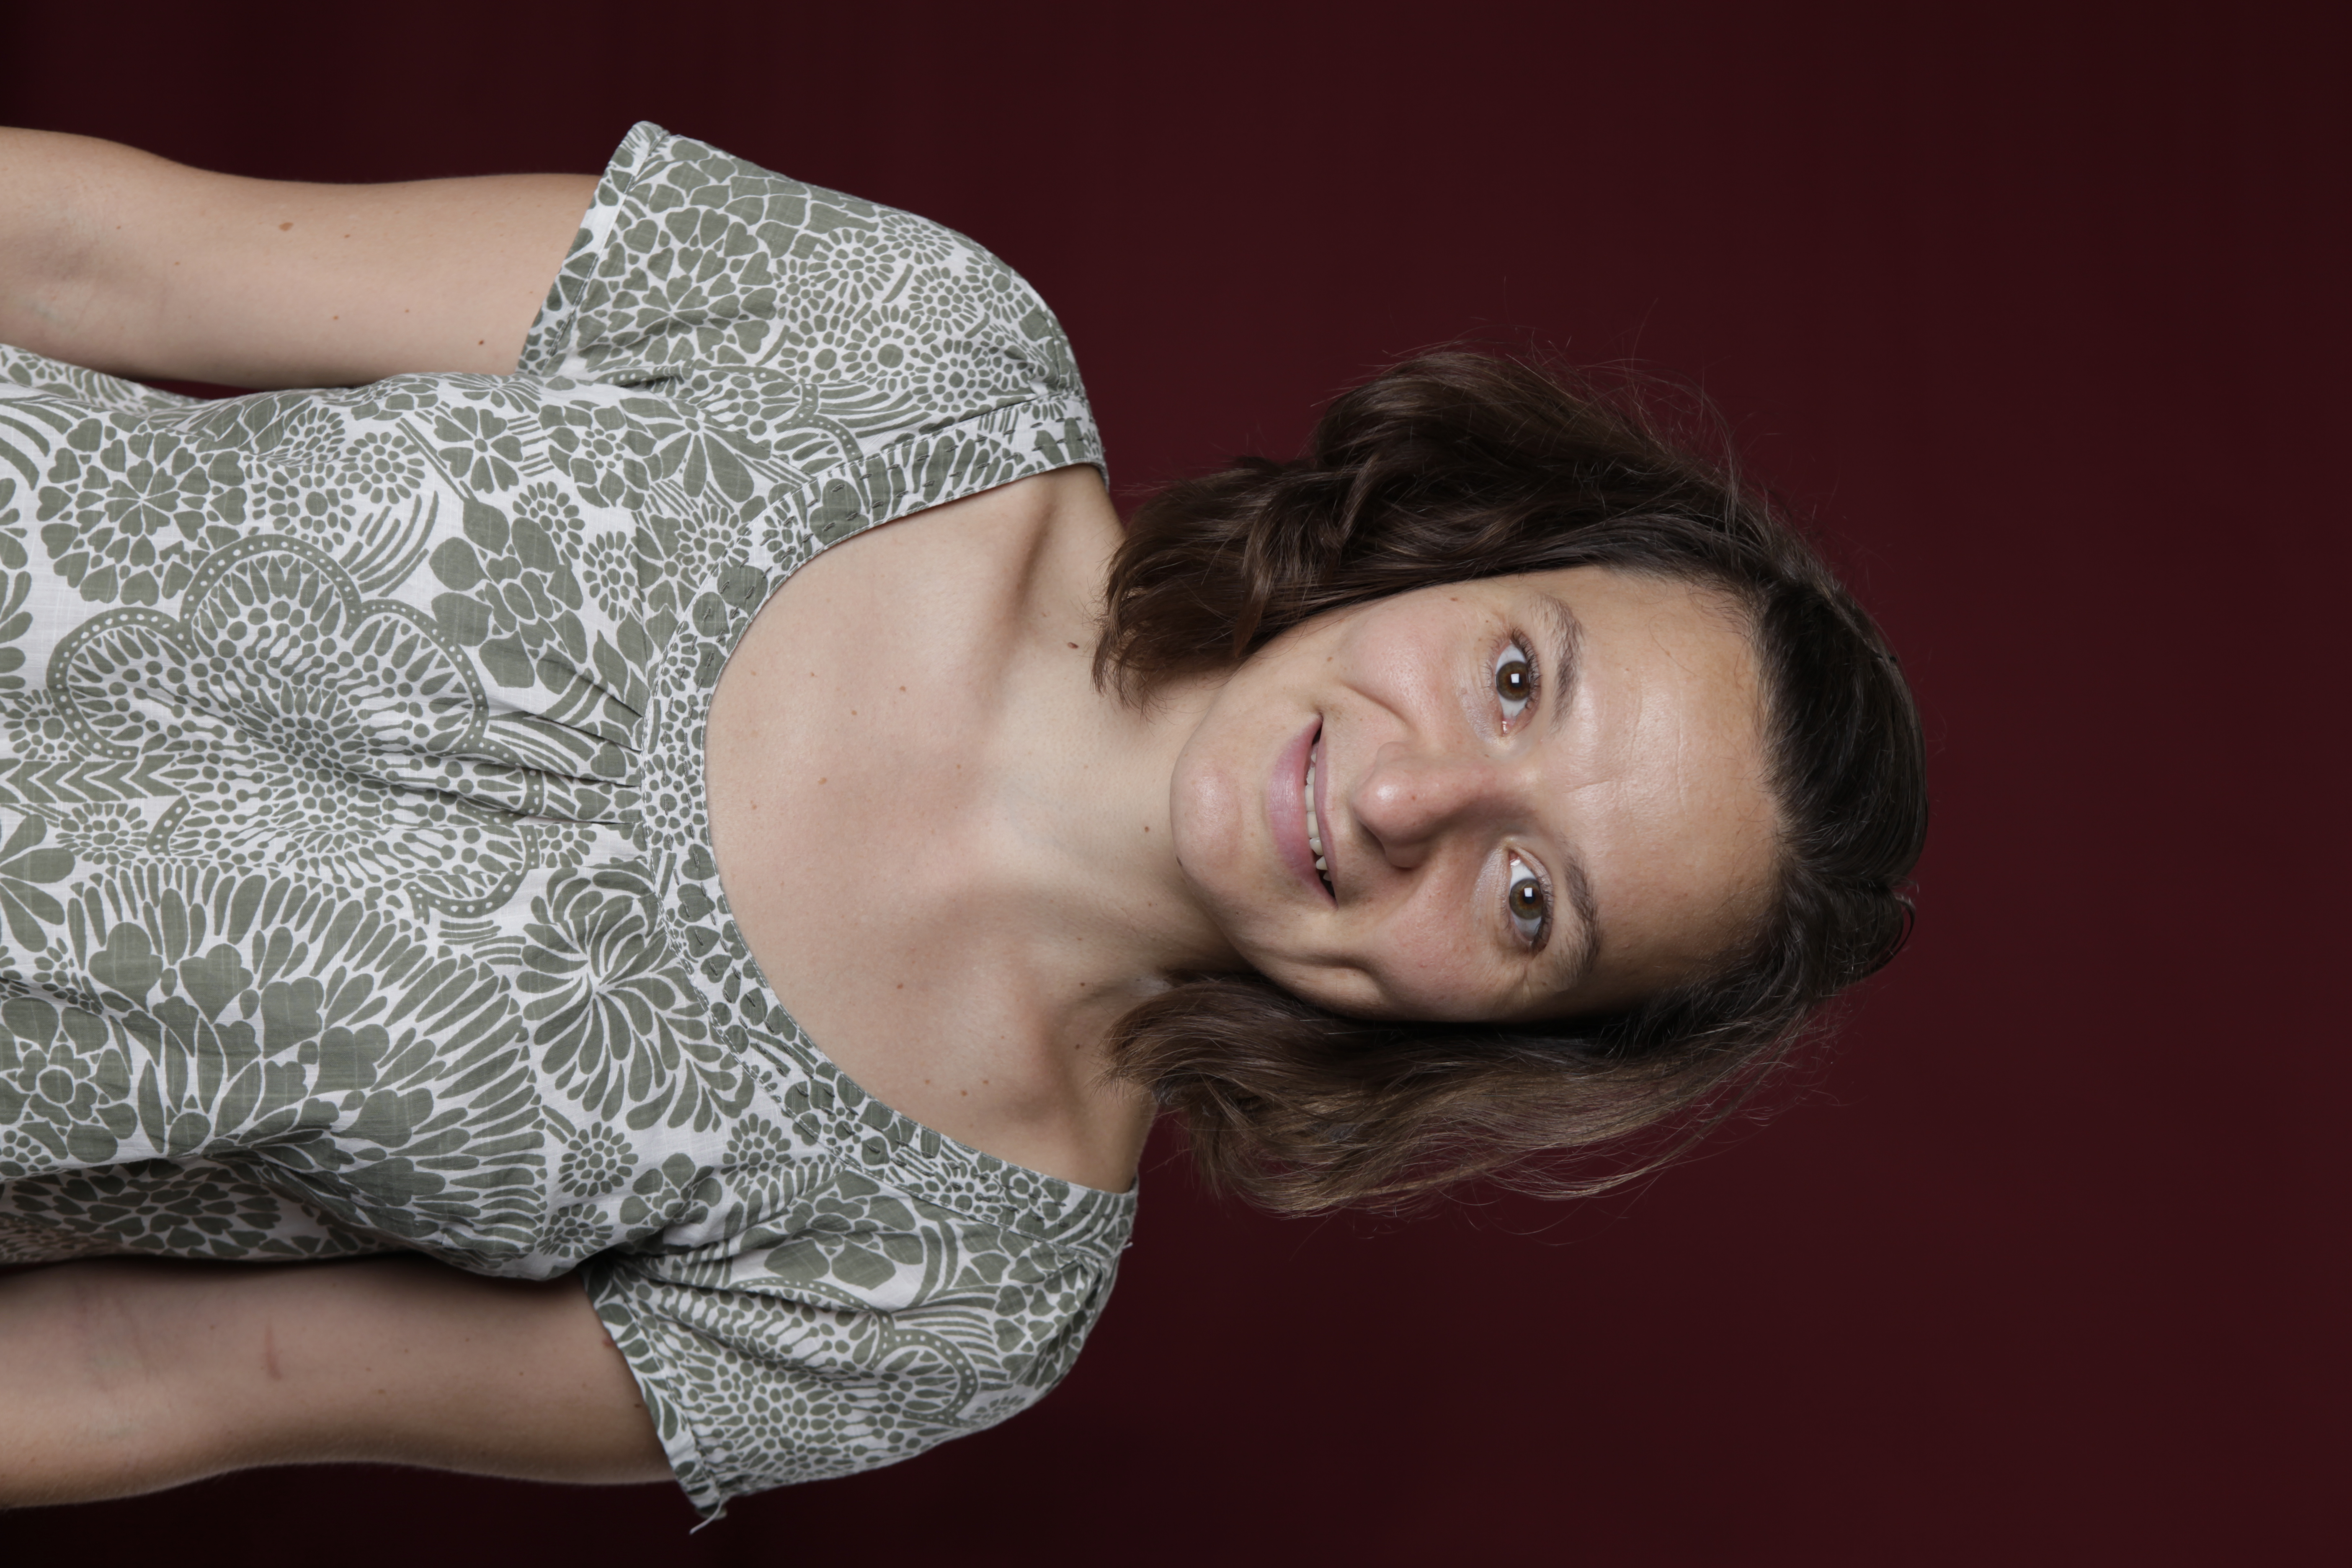 Pascale Gerbault